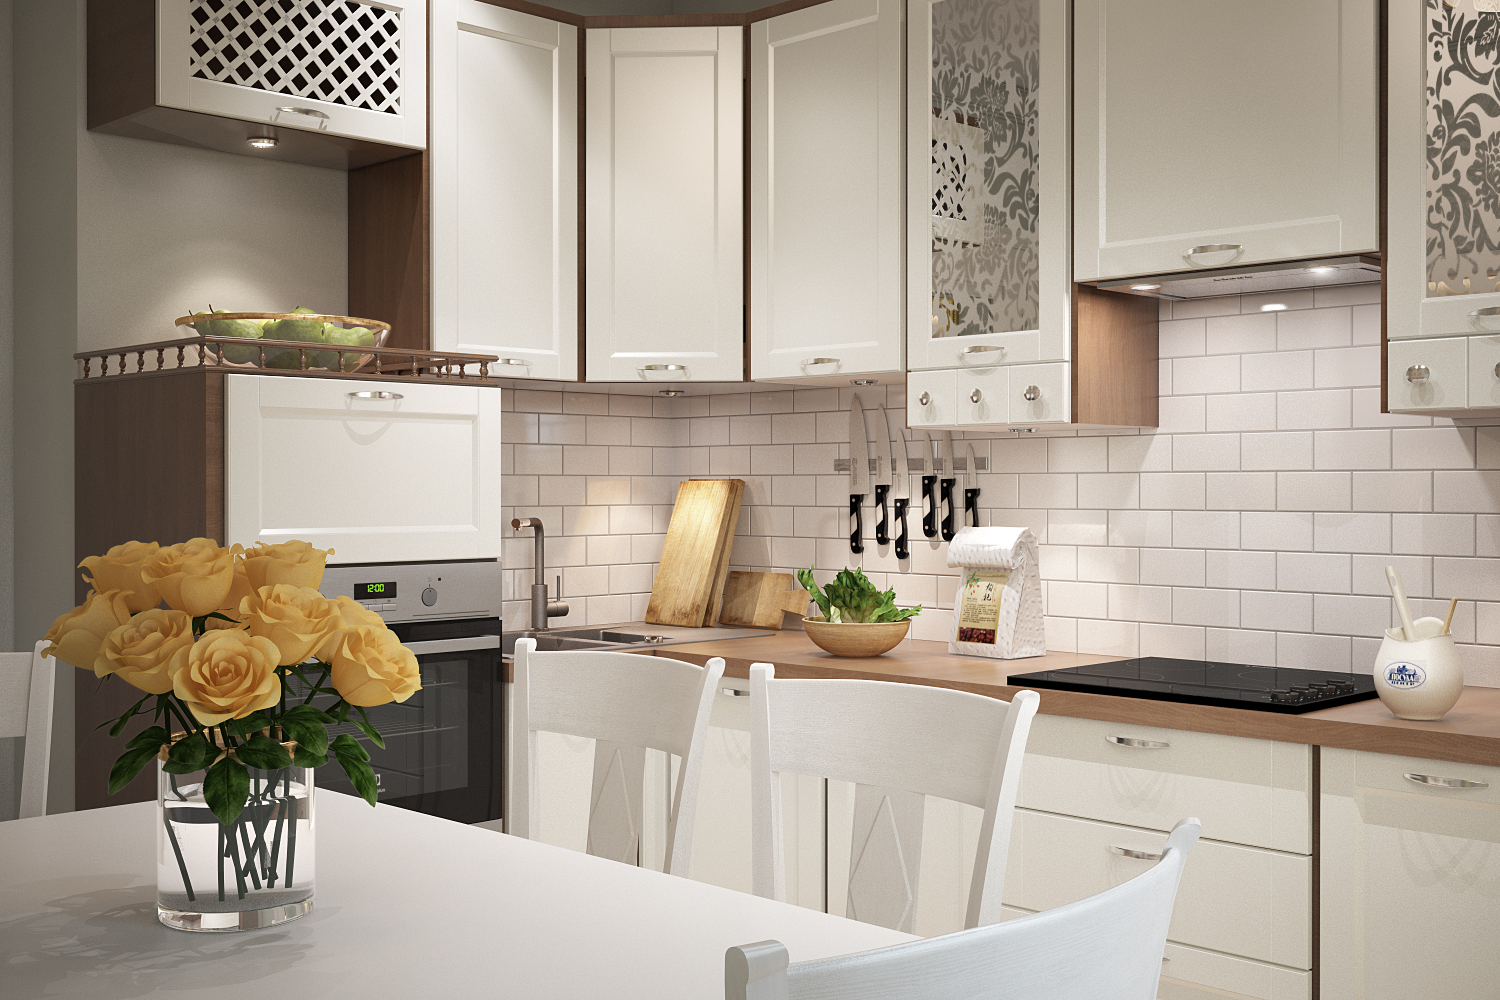 Kitchen / Kitchen in 3d max vray 3.0 image